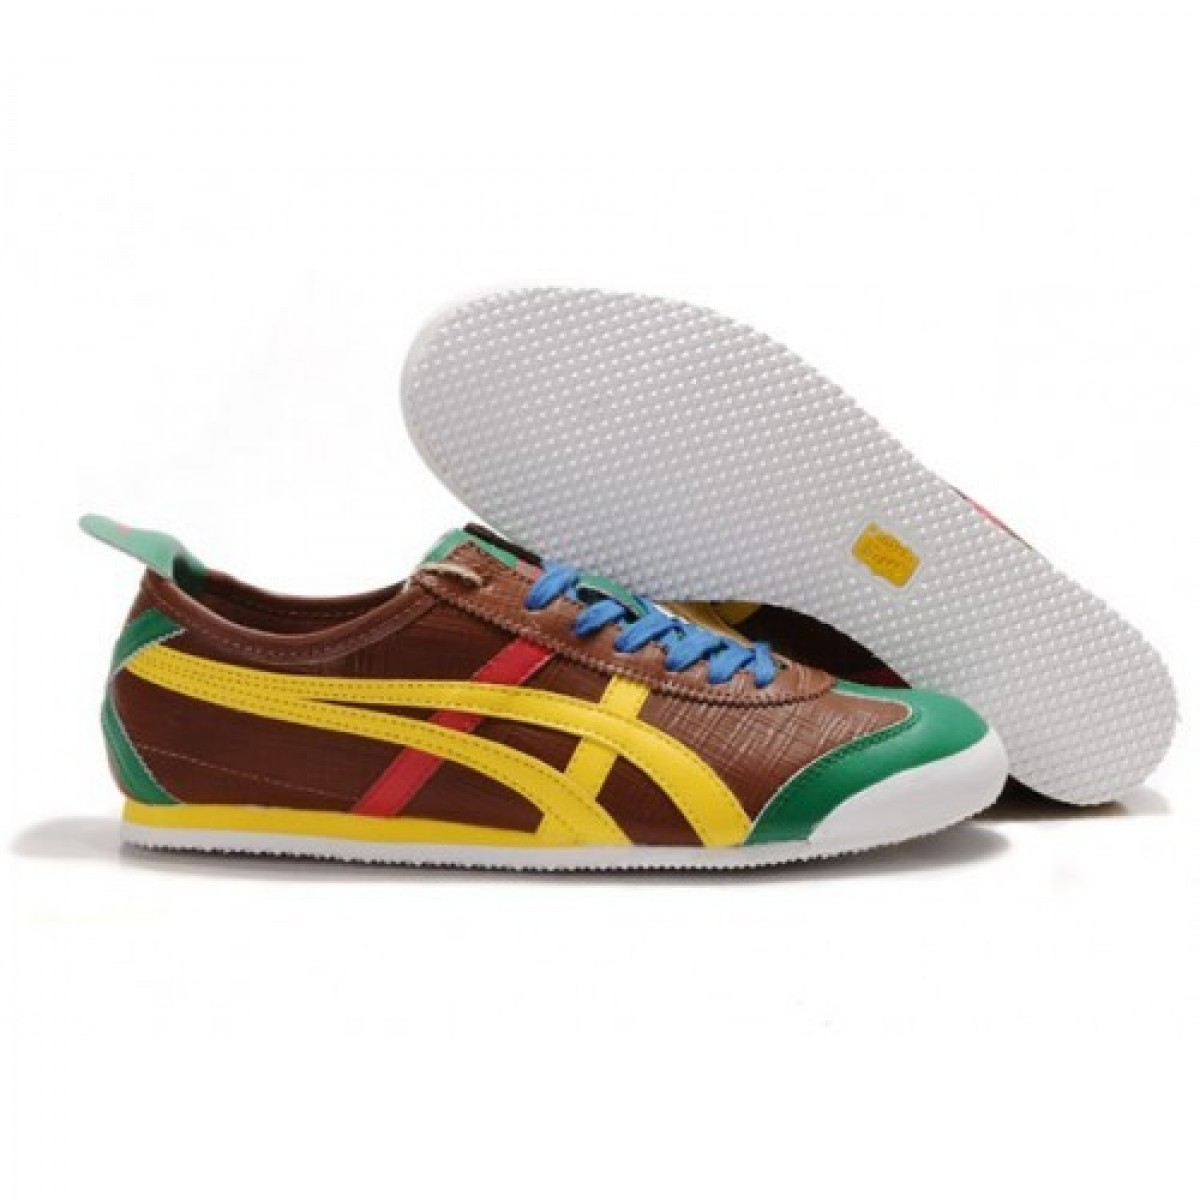 OE8574 Soldes Asics Tiger Mexico 66 Lauta Chaussures Brown Jaune Rouge Gree 60839682 Pas Cher